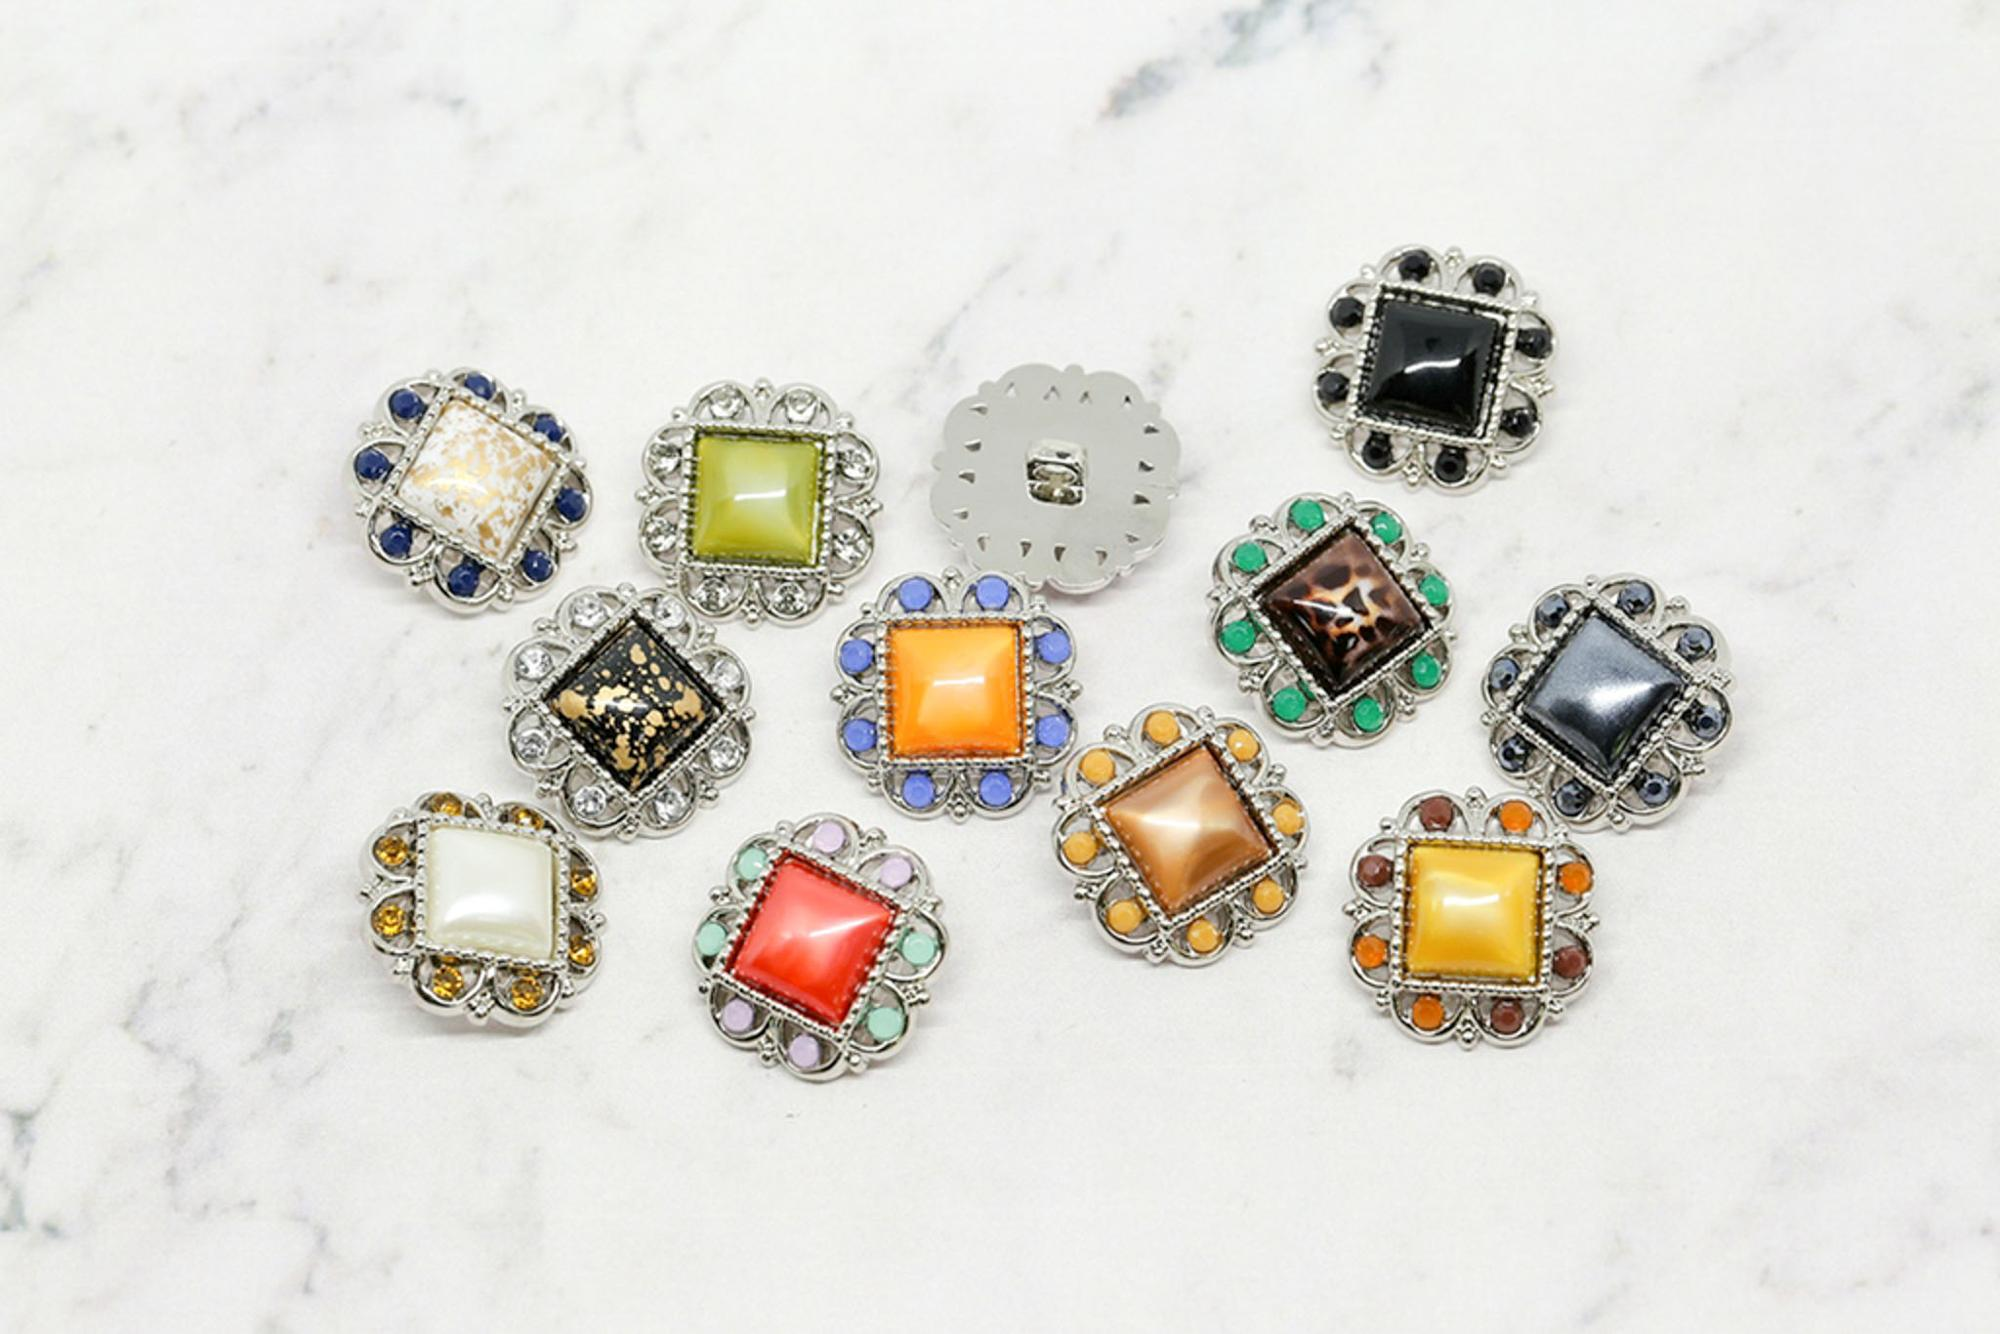 Wholesale Square Shape 144pcs/bag 21mm 25mm Rhinestone Buttons with Shank Sewing on for Accessory, Furniture or Clothes